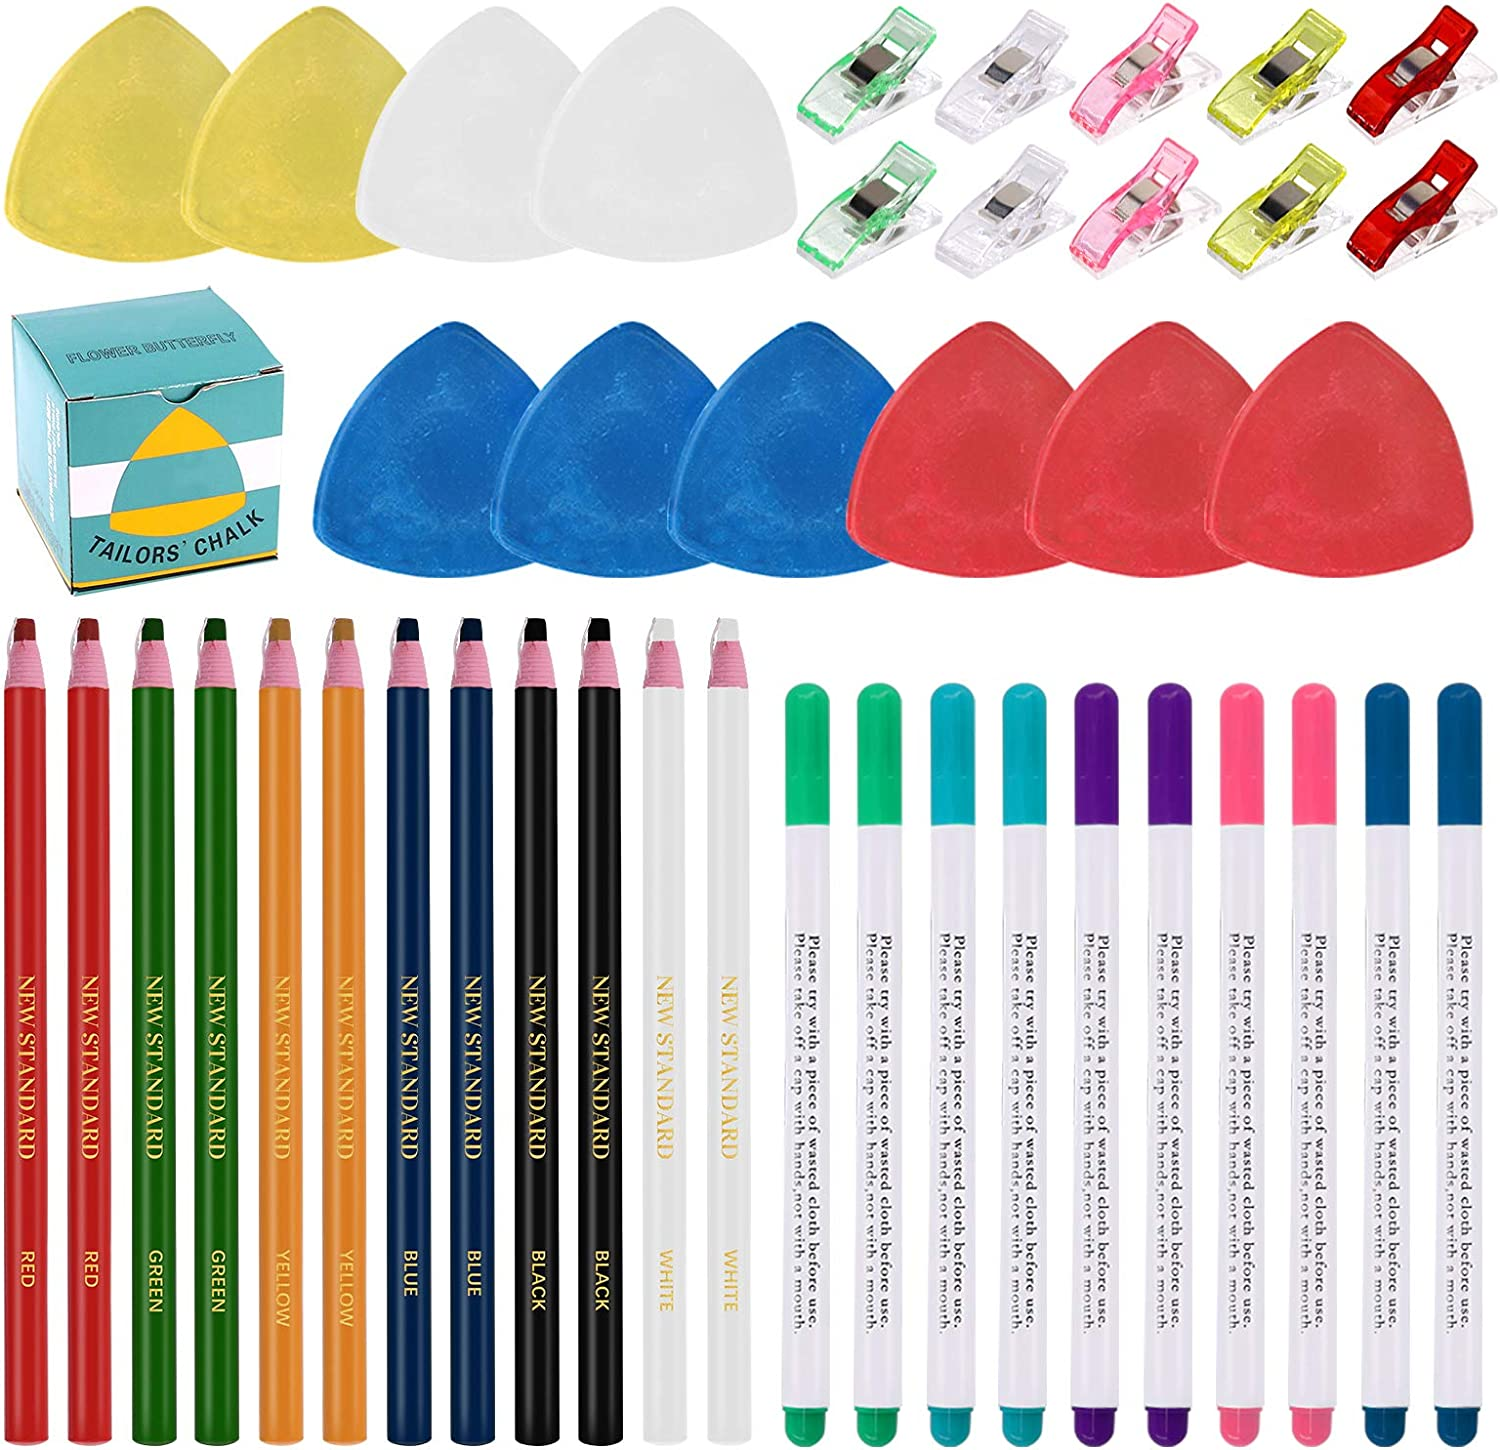 Swpeet 43Pcs Sewing Tools Kit, 10Pcs Professional Tailor's Chalk and 12Pcs Sewing Mark Pencil with 12Pcs 5 Color Disappearing Erasable Ink Fabric Marker Pen and 10Pcs Plastic Clips for Sewing Marking